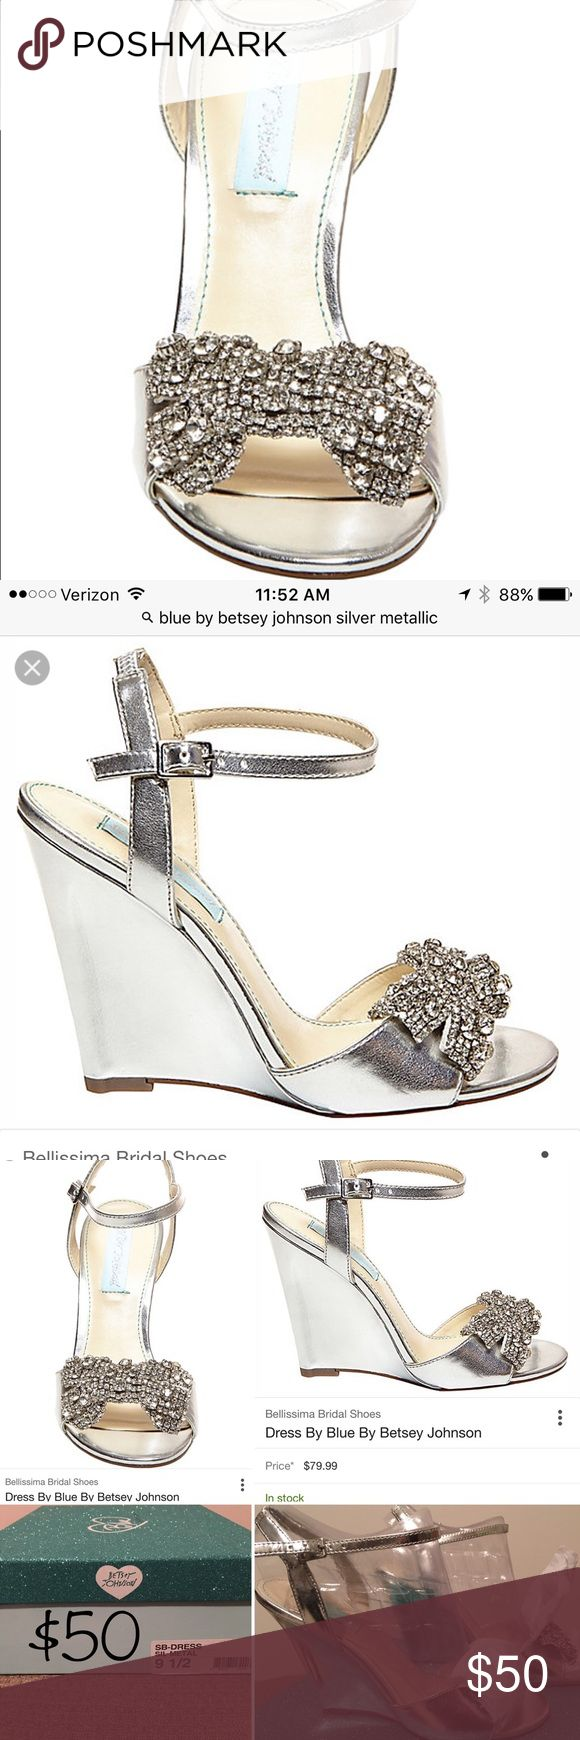 silver wedges with bedazzled bows. Blue by Betsey Johnson silver metallic wedges with sparkling bows. Never worn. Purchased for wedding and didn't end up wearing them. Betsey Johnson Shoes Wedges